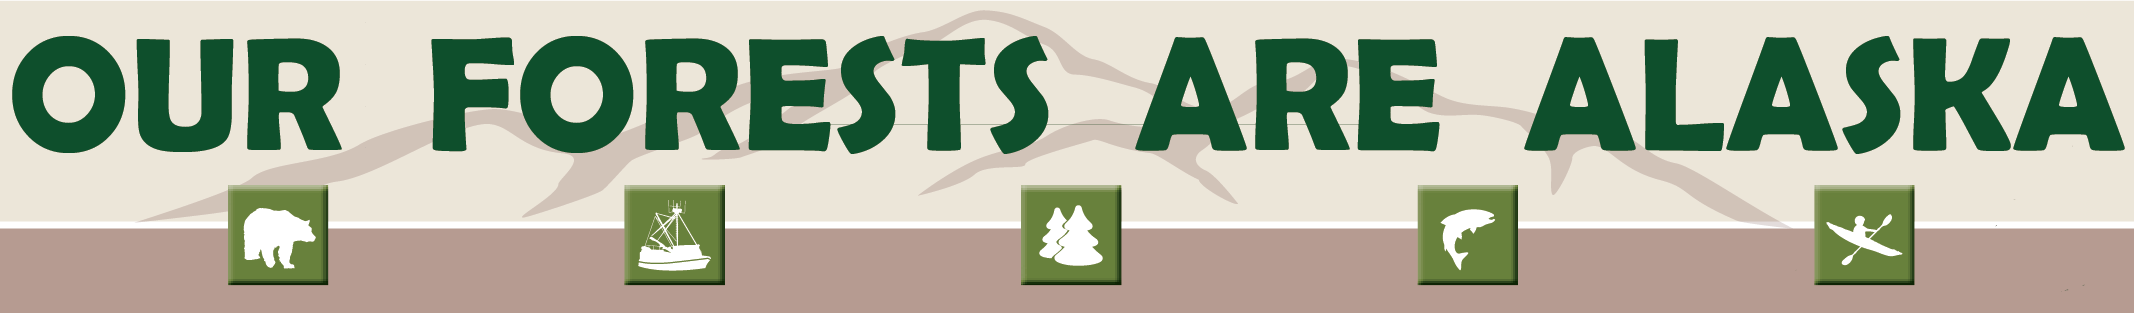 Our Forests Are Alaska banner green letters with tan/brown backdrop, 5 green buttons